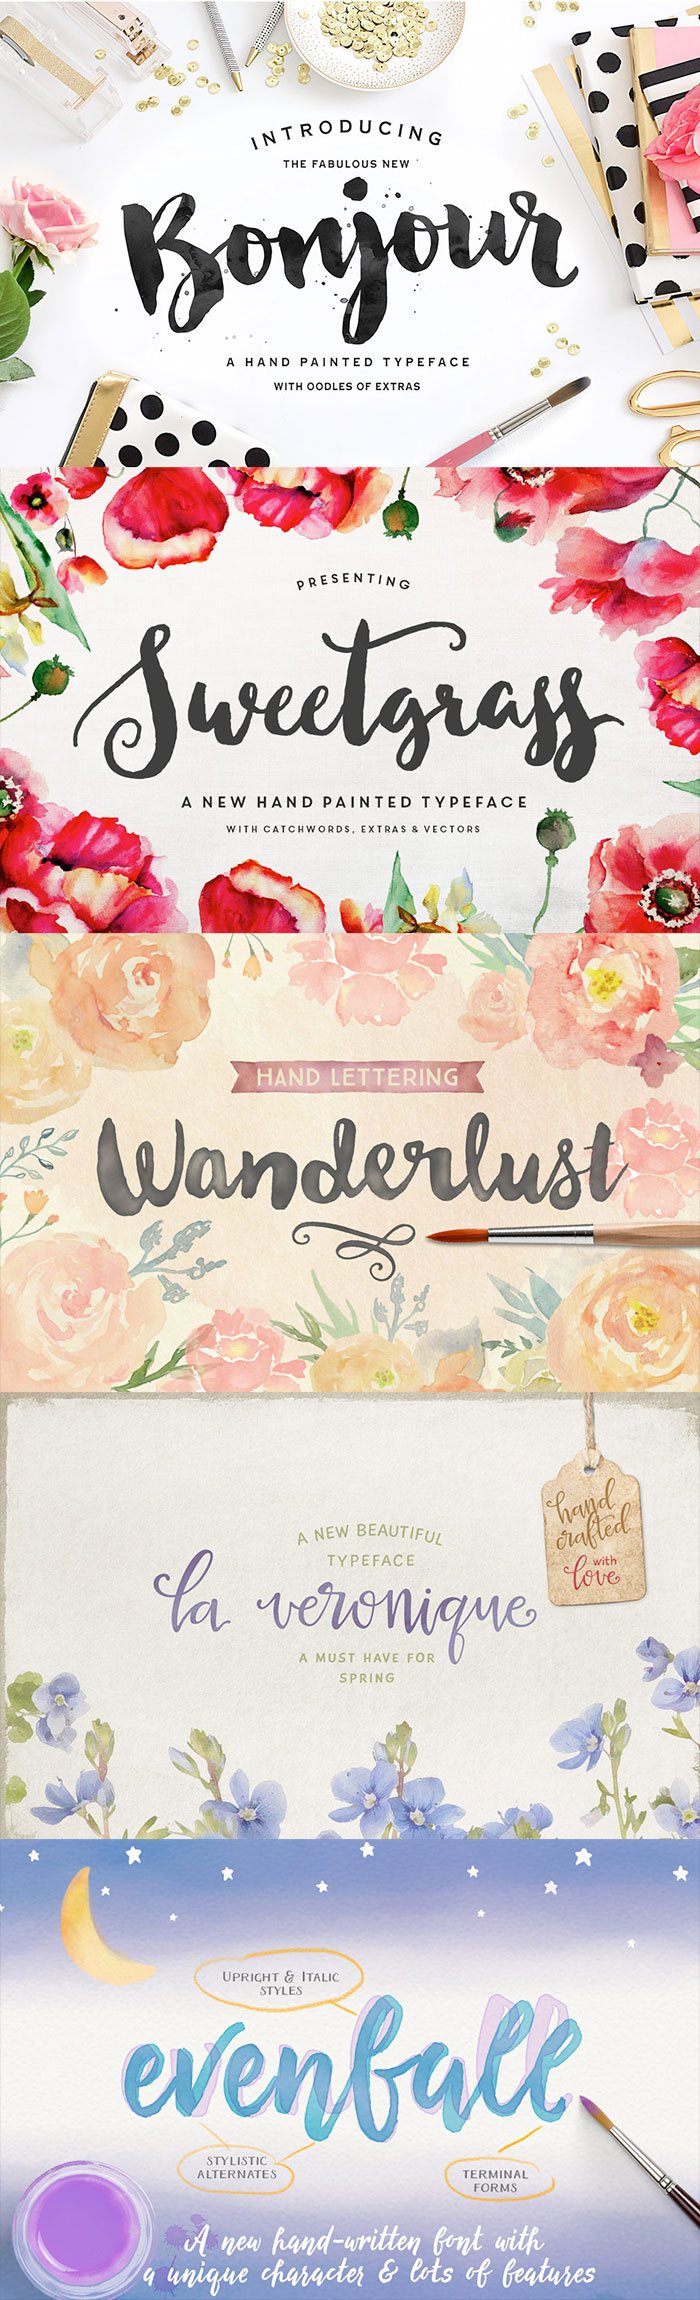 5 Gorgeous handwritten brush script fonts in this Design Cuts bundle!